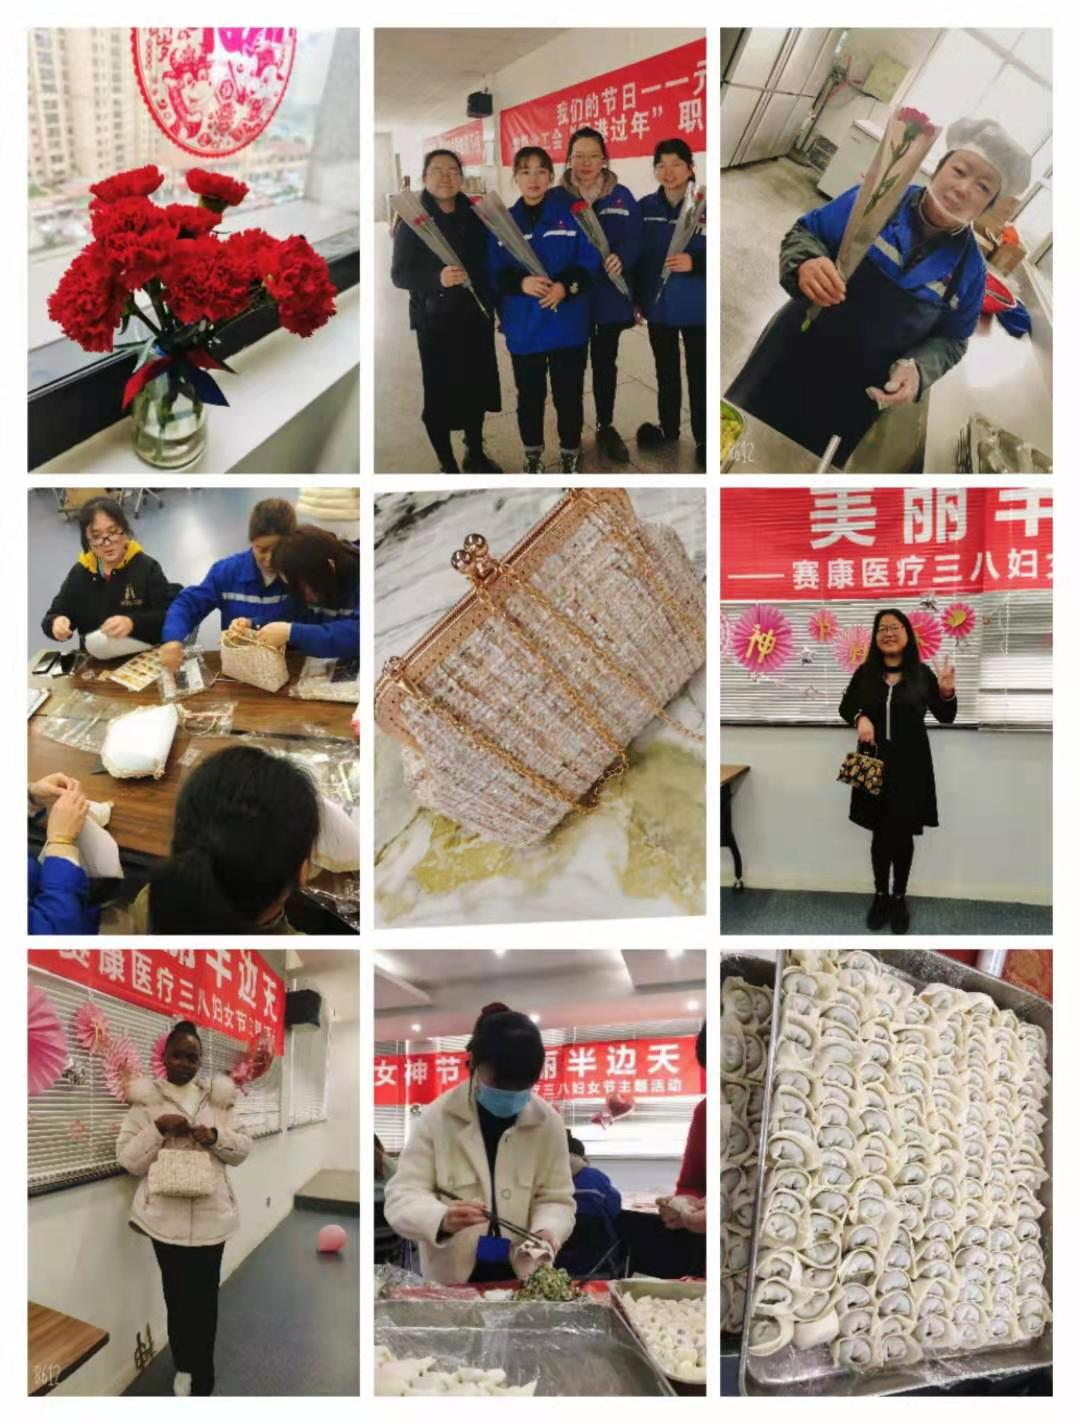 SAIKANG held interesting activities for ladies on March 8th.